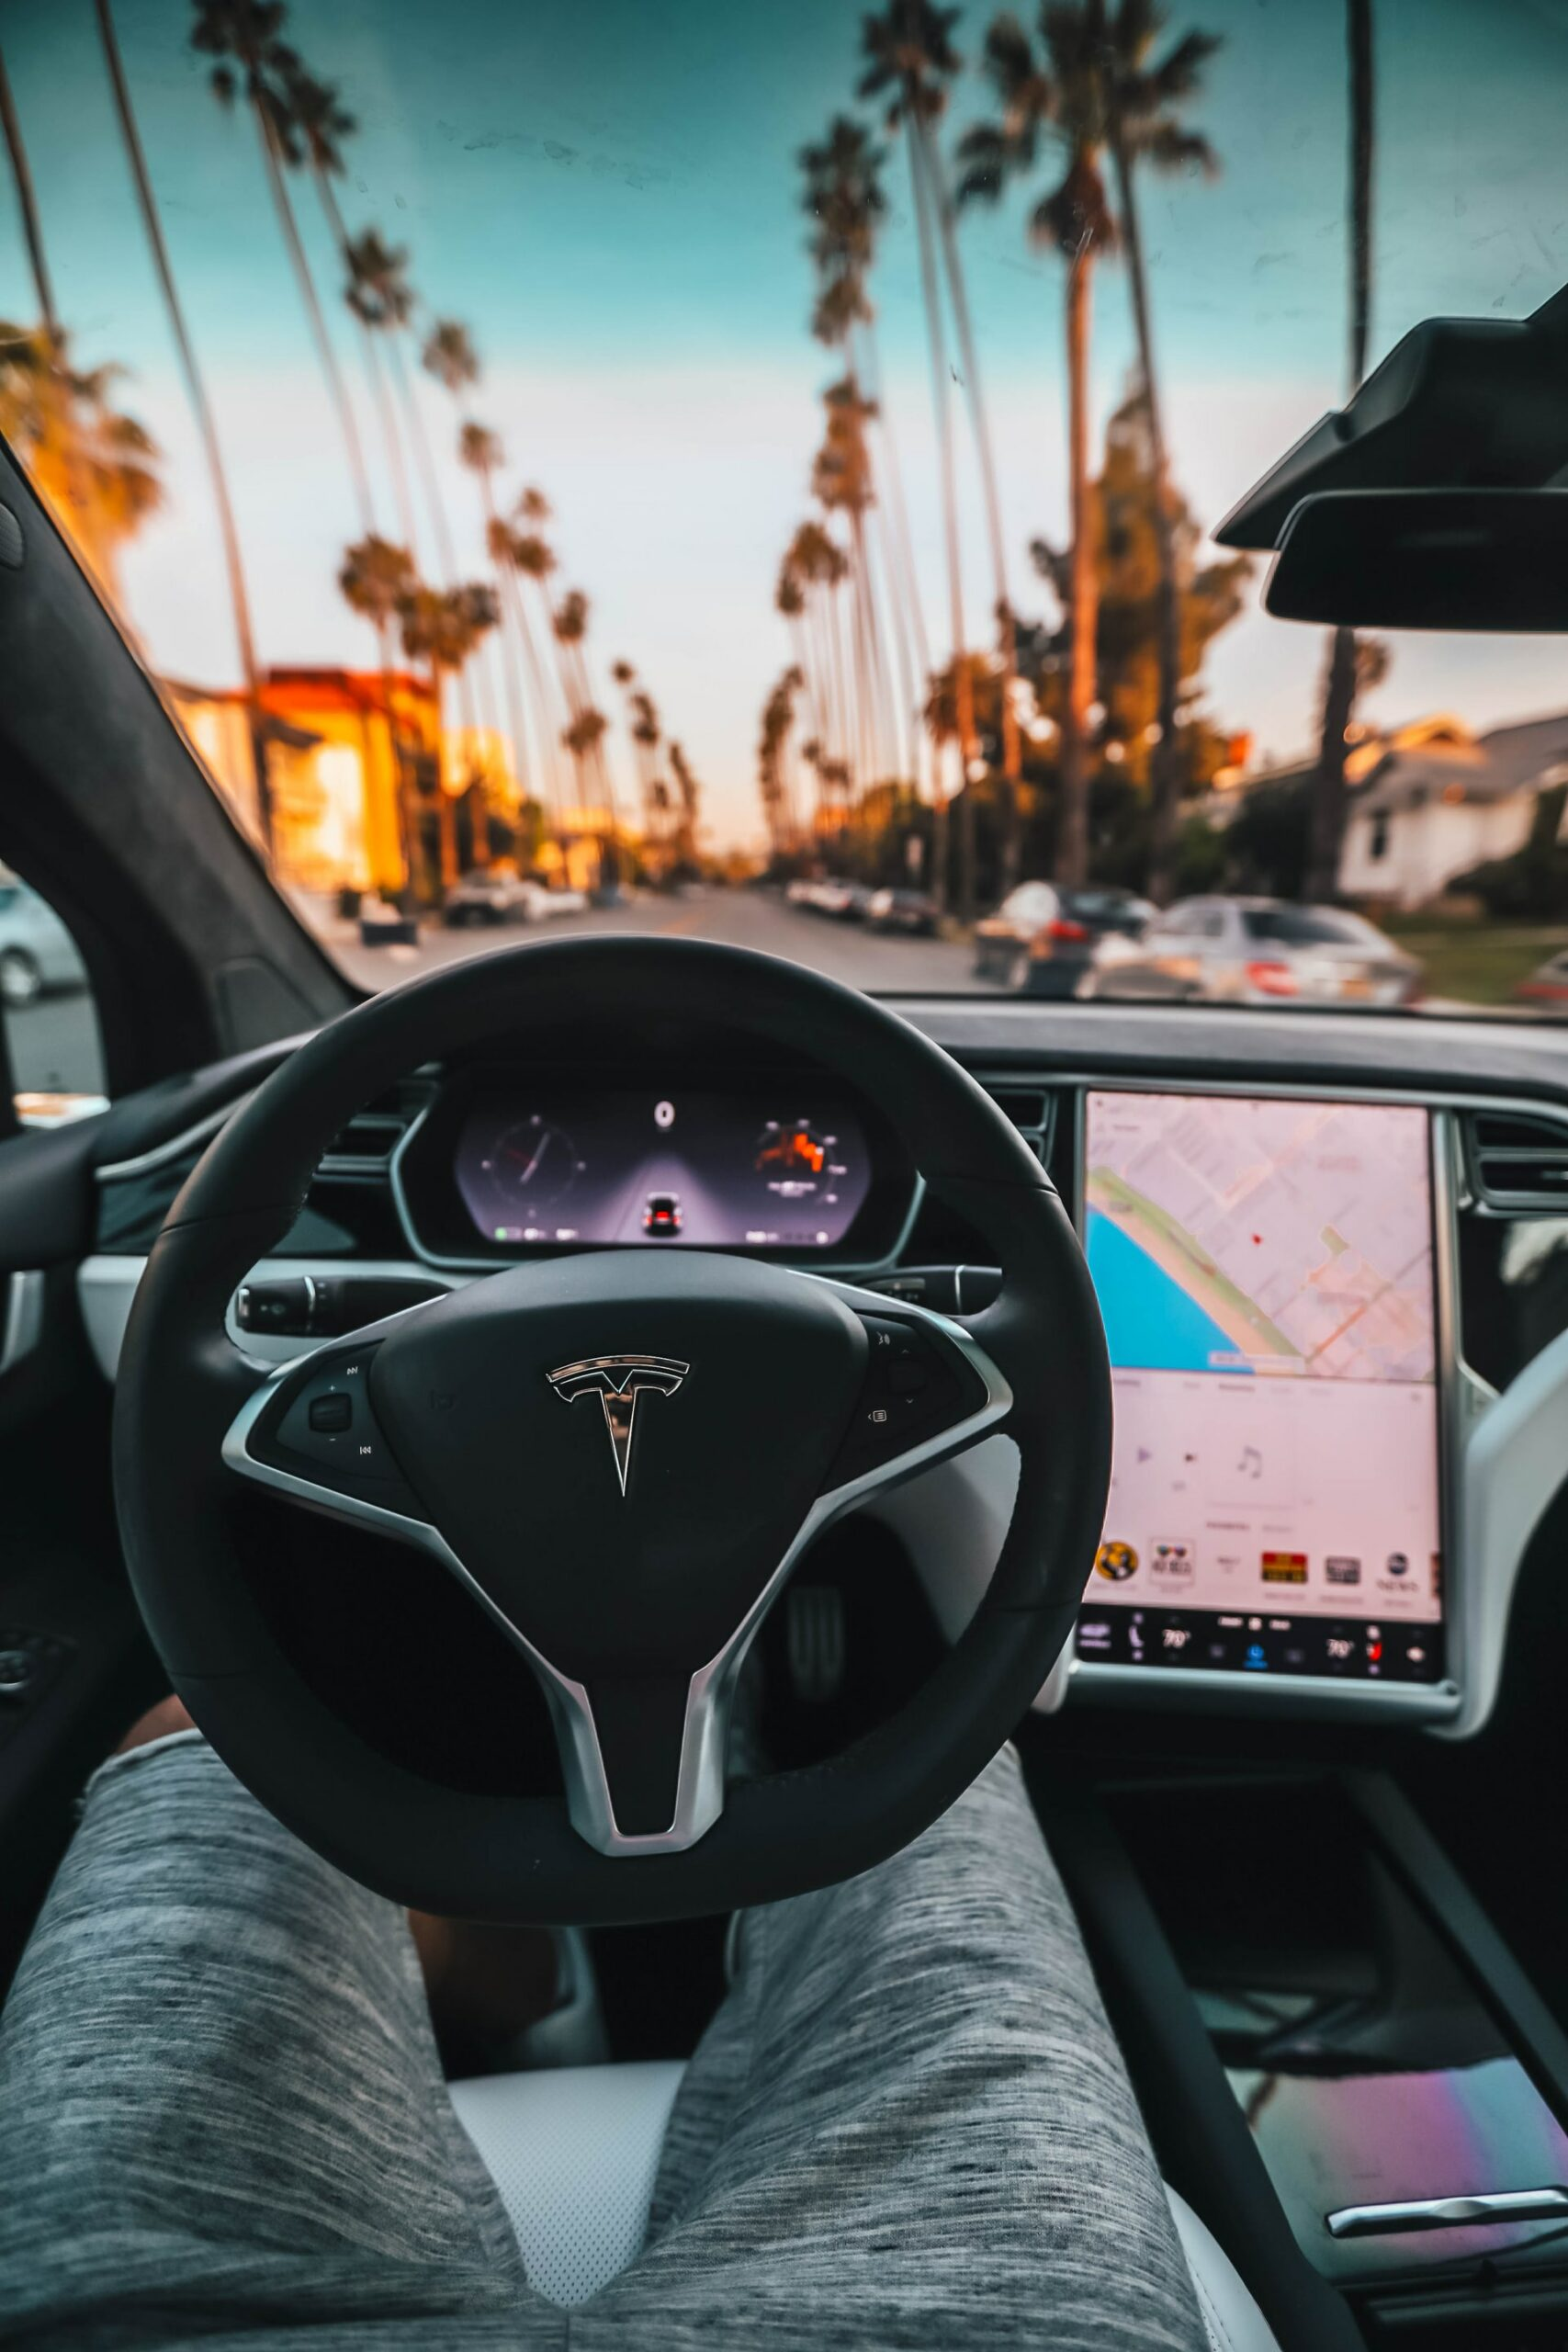 Tesla Stock Skyrocketed by Over 740% in 2020, Sold Nearly 500K CarsBrandspurng